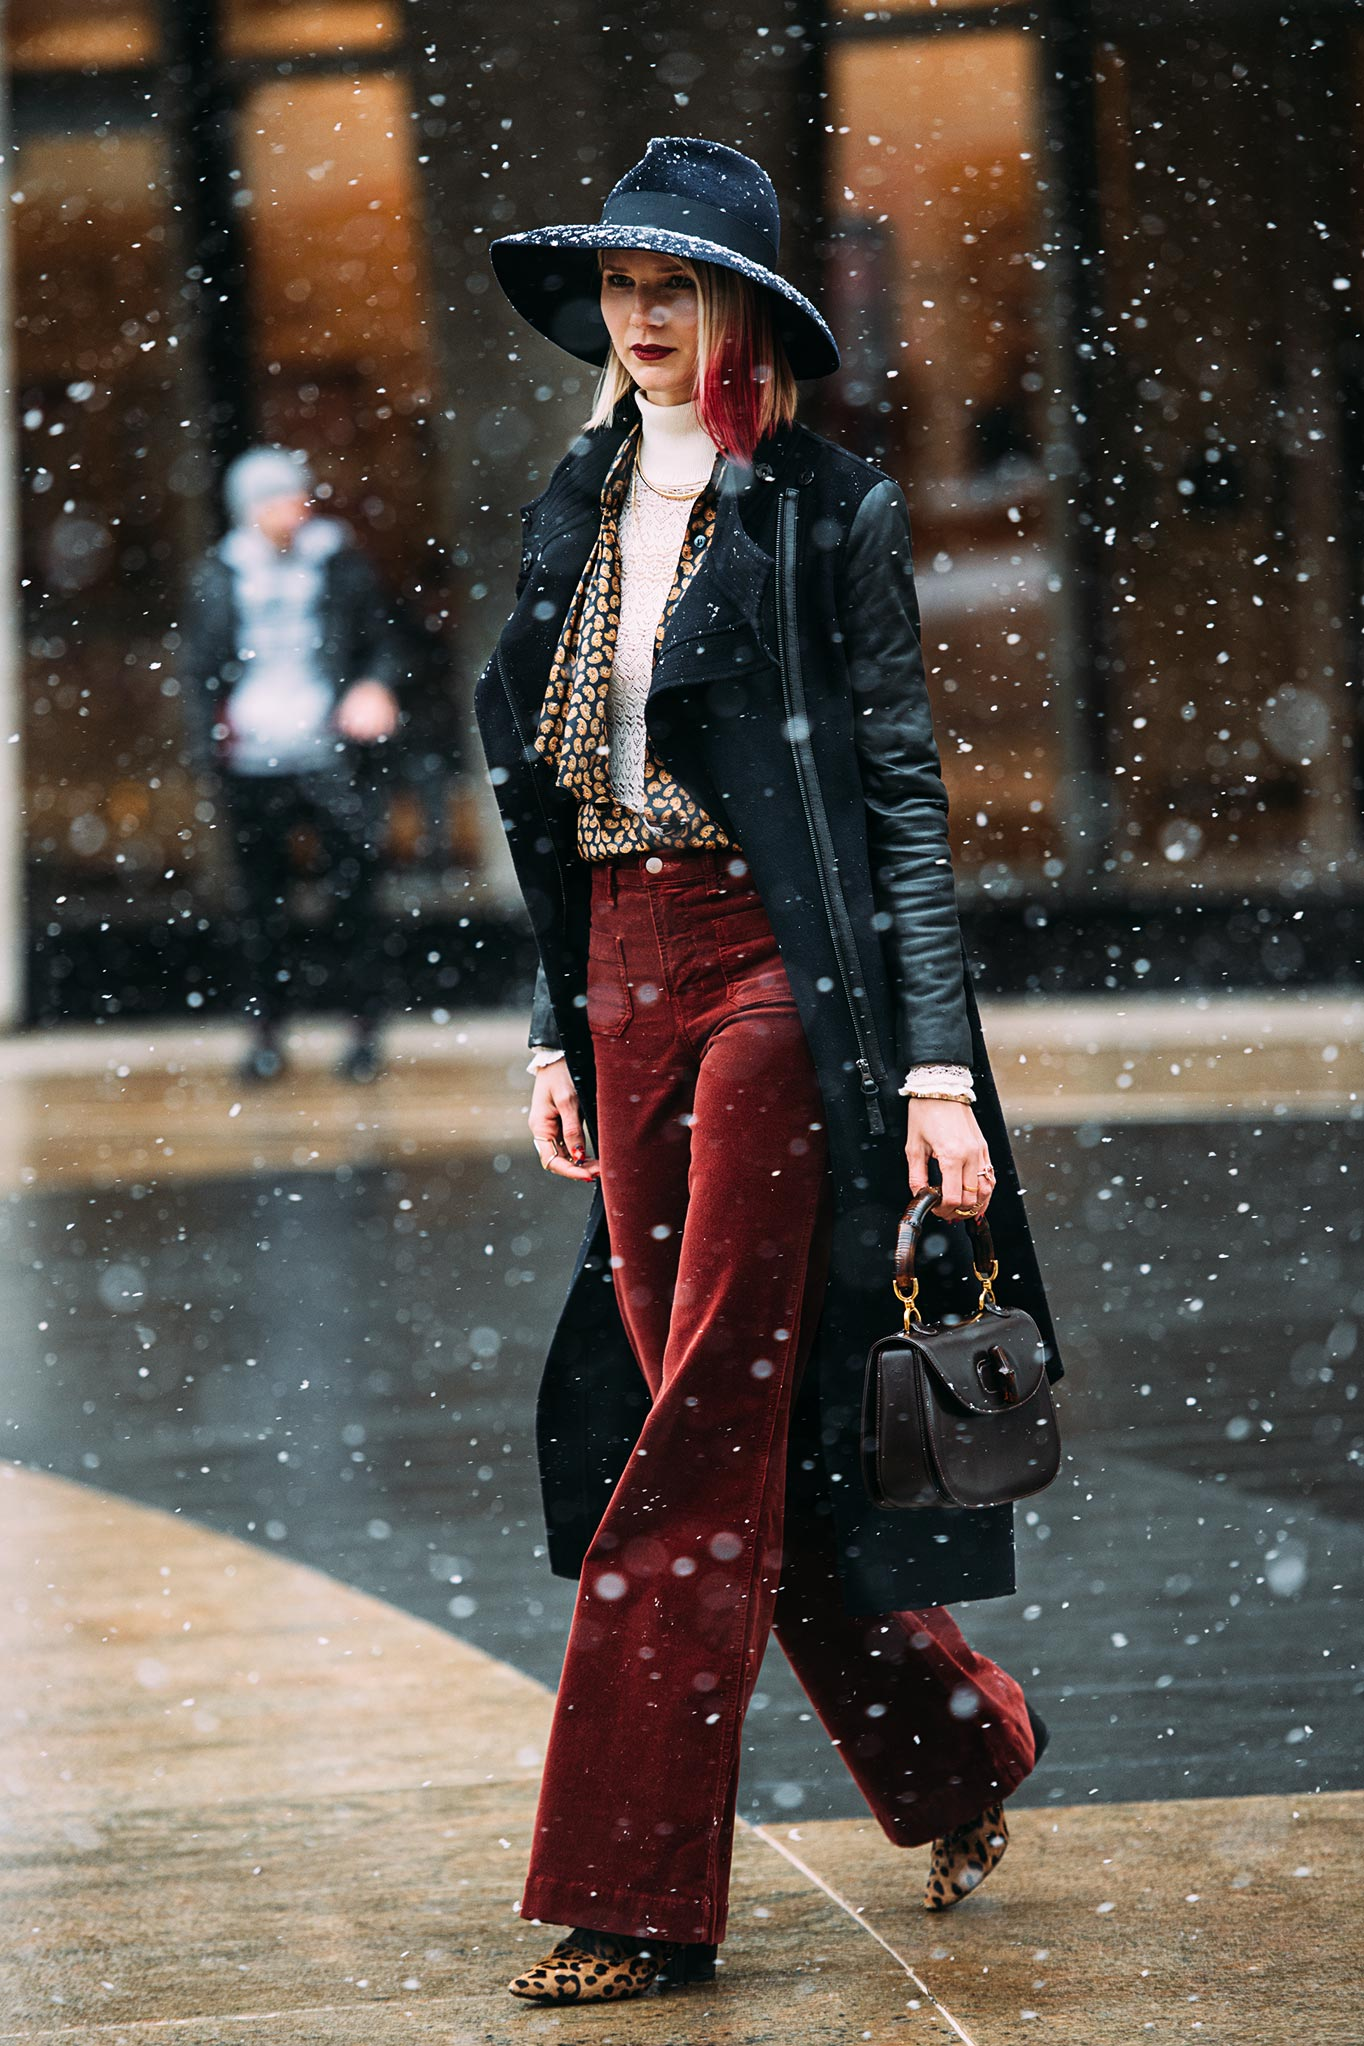 Samantha Angelo at New York Fashion Week Fall/Winter 2015